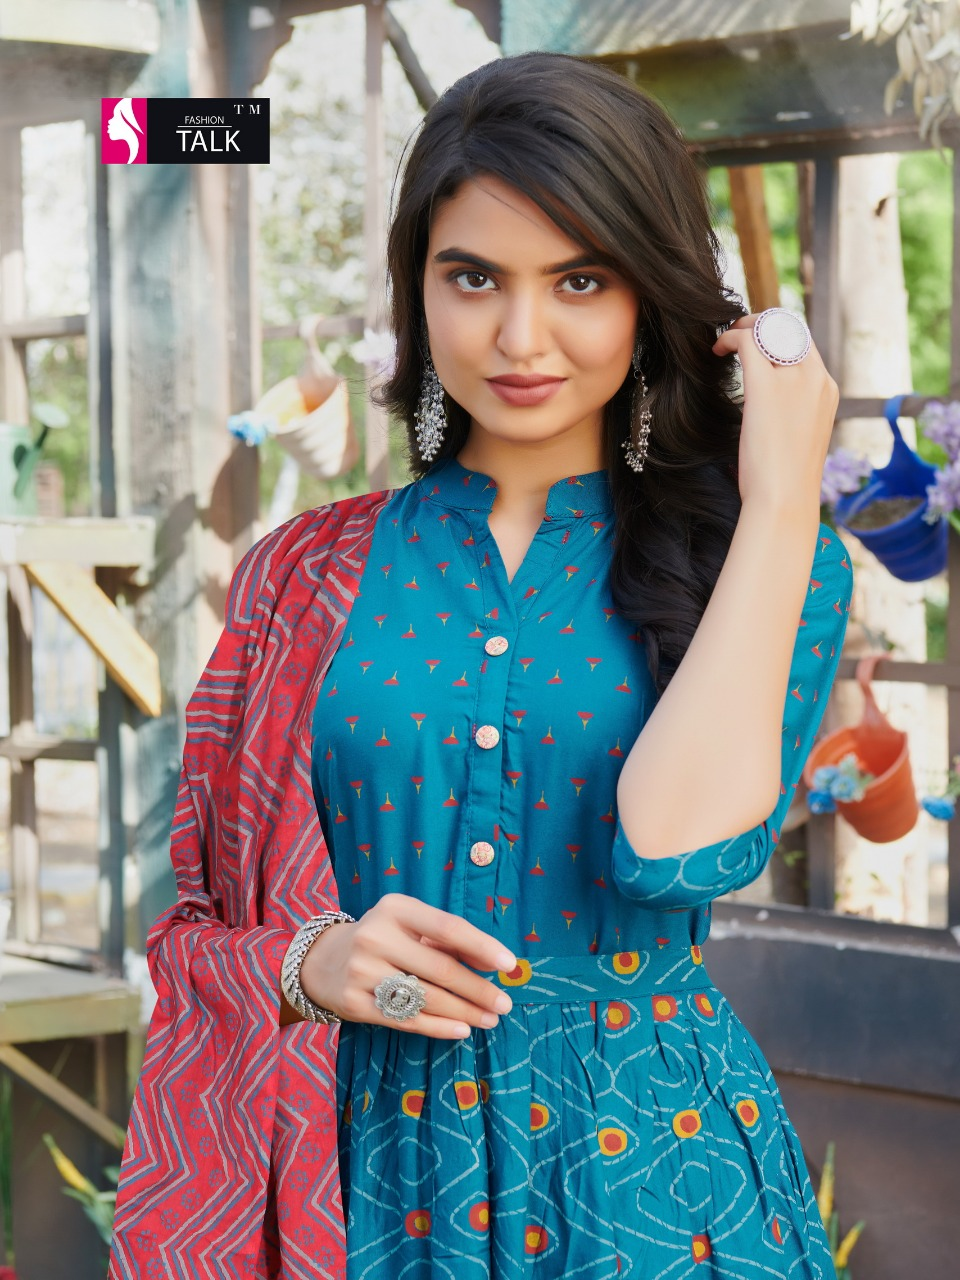 Fashion Talk Cocktail Vol 1 Kurti with Dupatta Wholesale Catalog 8 Pcs 19 - Fashion Talk Cocktail Vol 1 Kurti with Dupatta Wholesale Catalog 8 Pcs